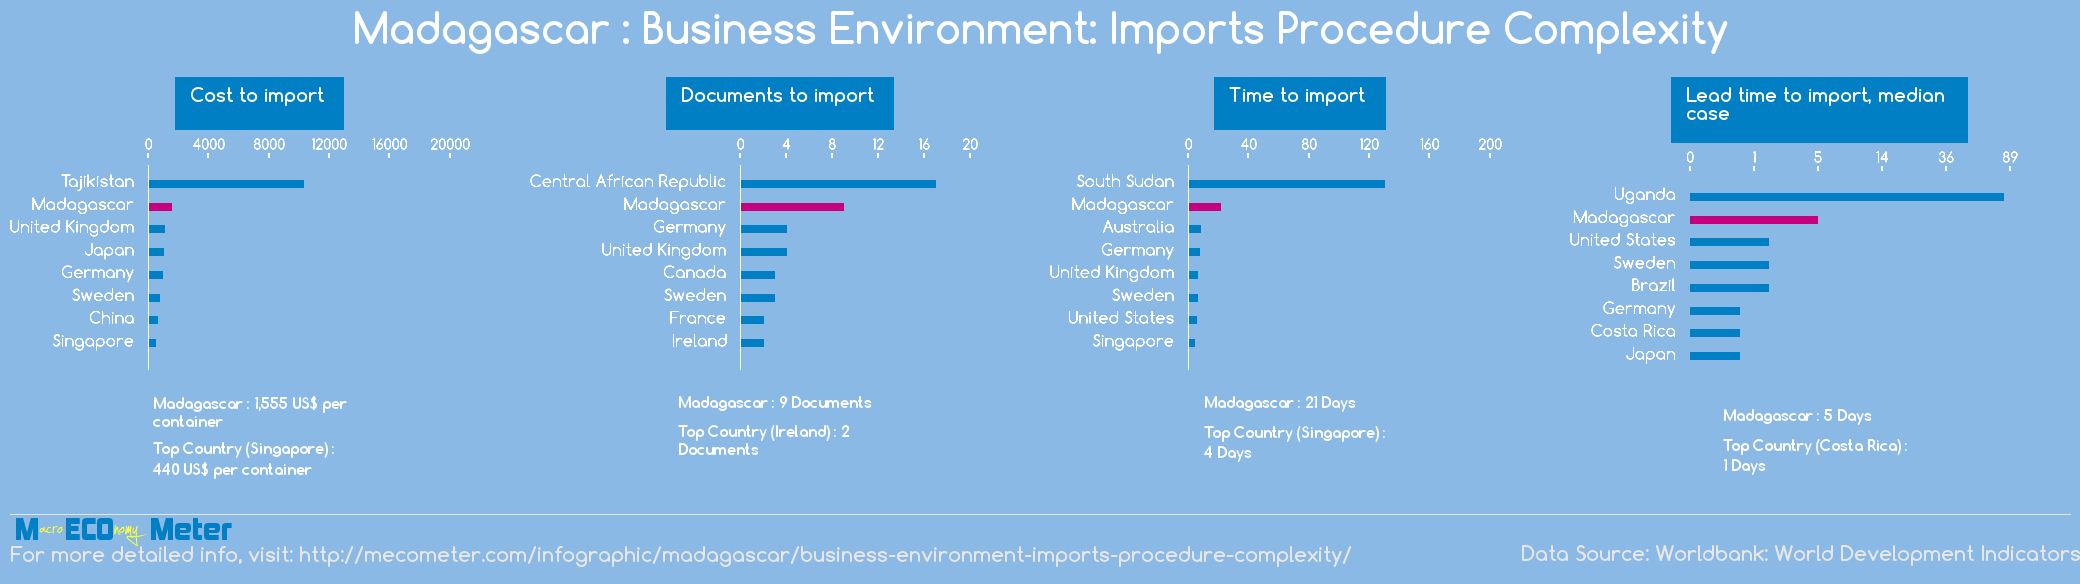 Madagascar : Business Environment: Imports Procedure Complexity